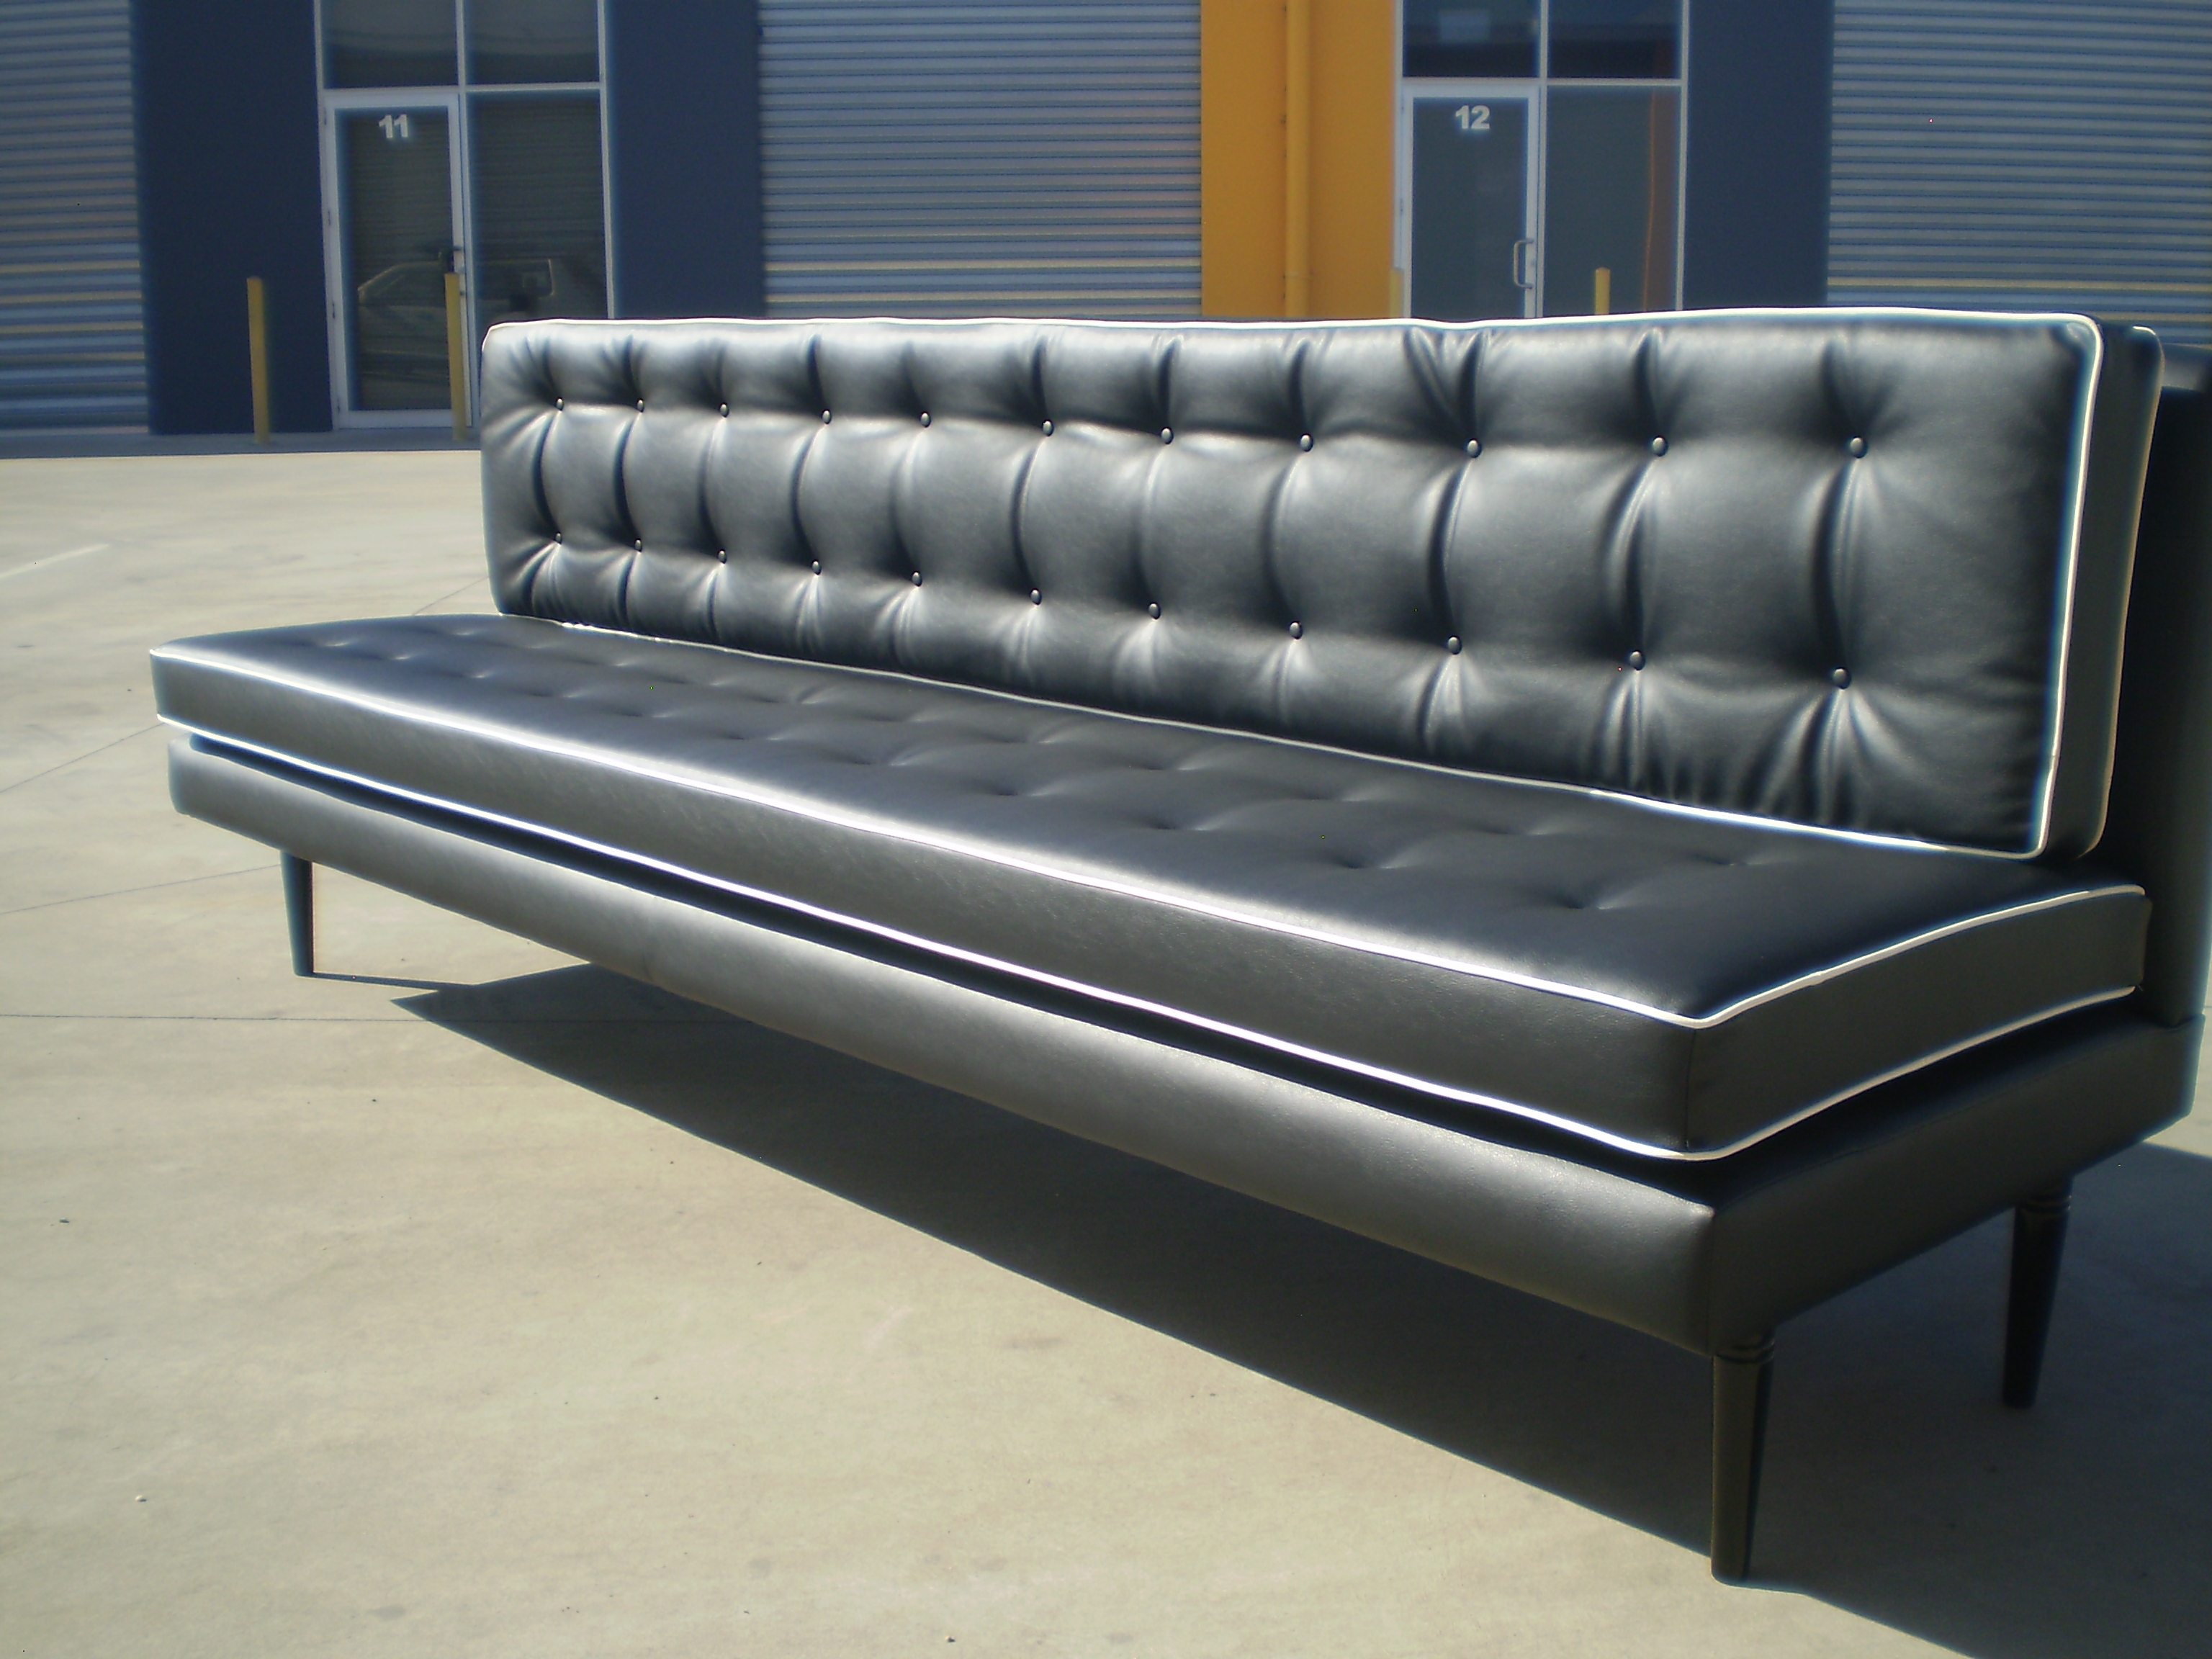 restaurant sofa booth seating black sofas uk 1950 39s or banquette and seat melbourne jaro